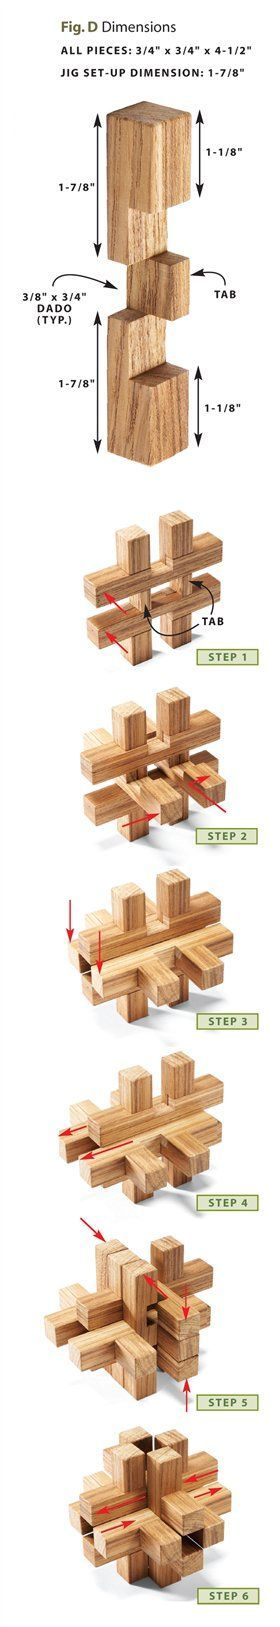 Wooden Burr Puzzles - Woodworking Projects - American Woodworker: